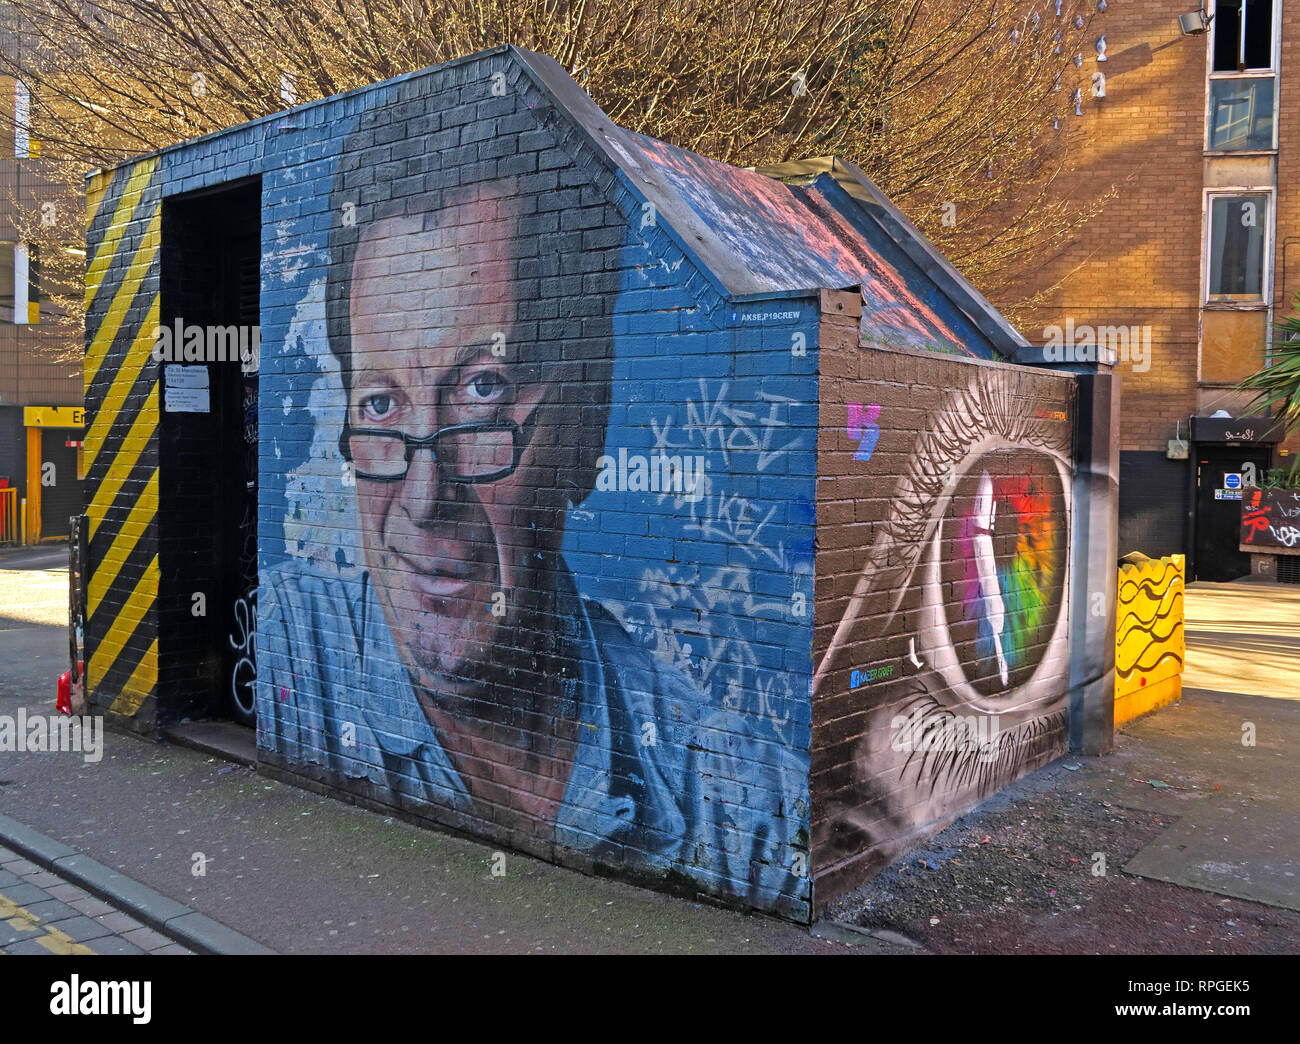 Tony Wilson (Anthony H Wilson) mural / artwork, Factory Records owner and Granada broadcaster, Tib St Manchester, UK - Stock Image